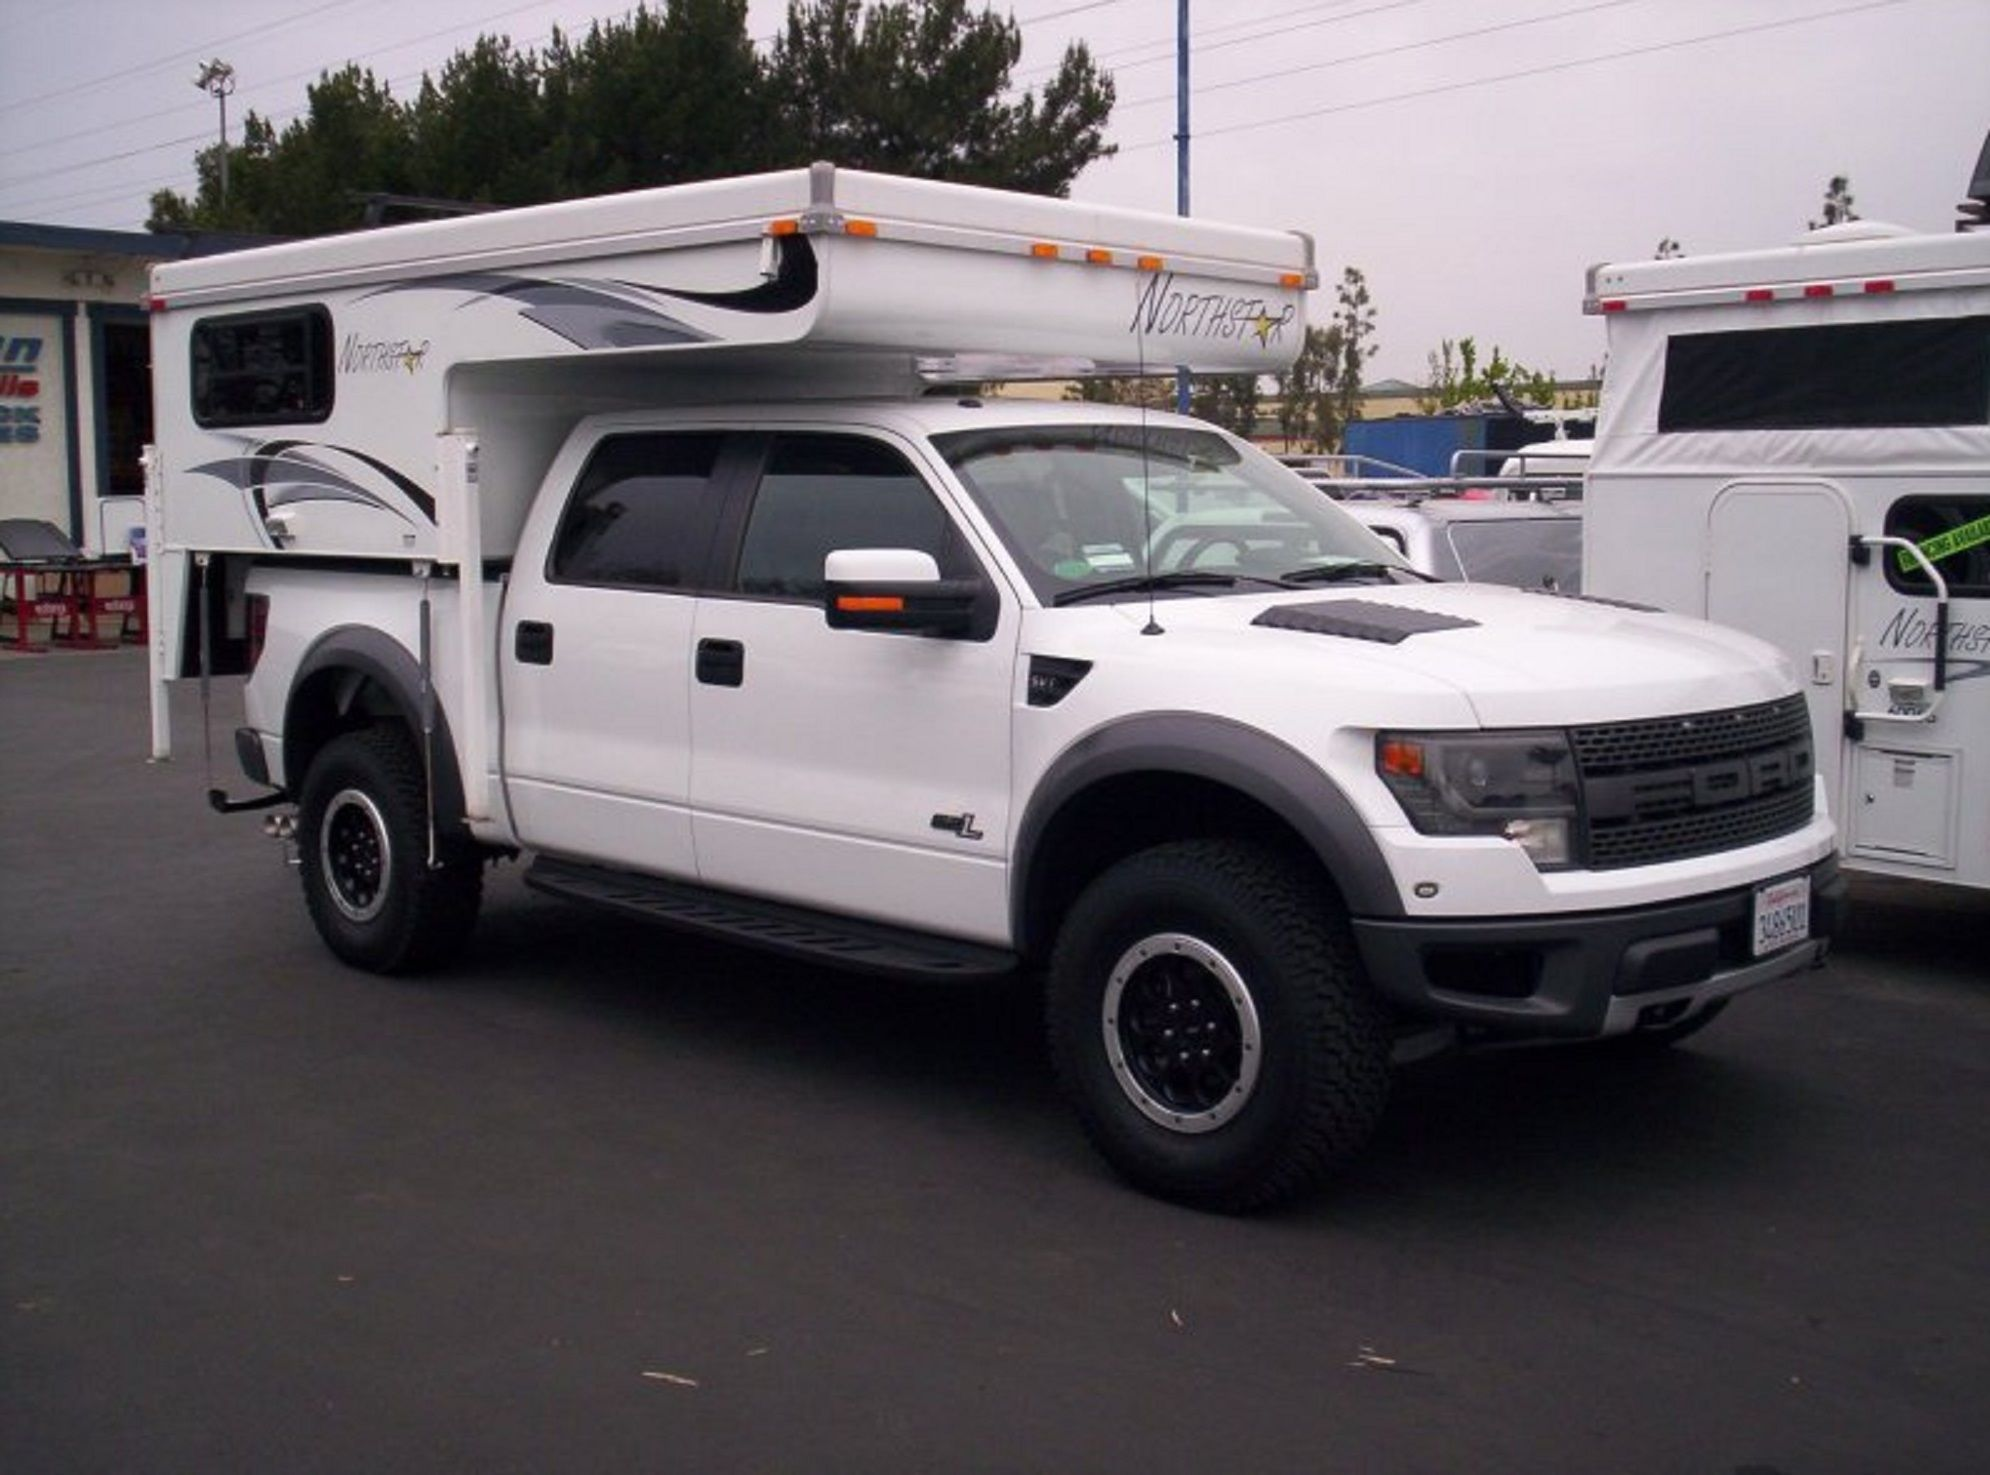 Northstar TC650 PopUp Truck Camper for 2016 Ford F150